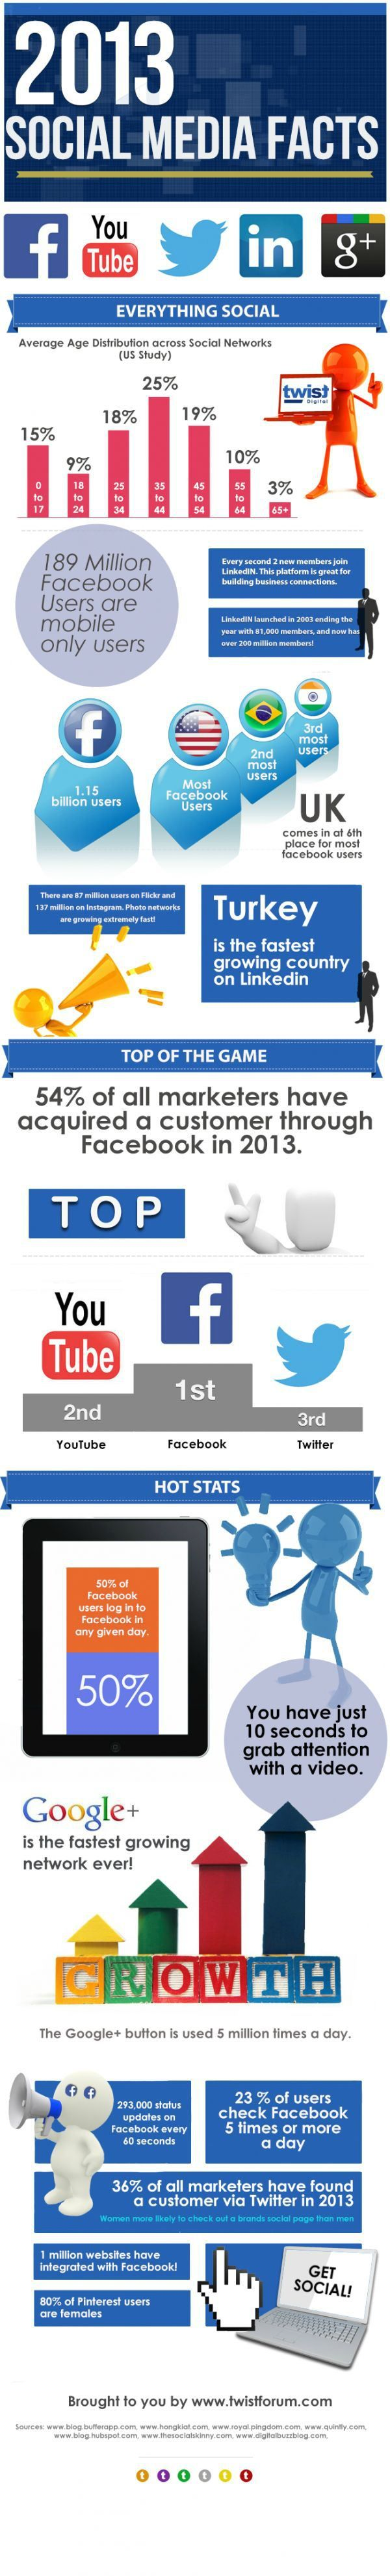 2013 Social Media Facts #infographic #socialmedia: Website, Social Media, Facts Infographics, 2013 Social, Socialmedia Infographics, Media Facts, Business Marketing, Business Infographics, Infographics Socialmedia